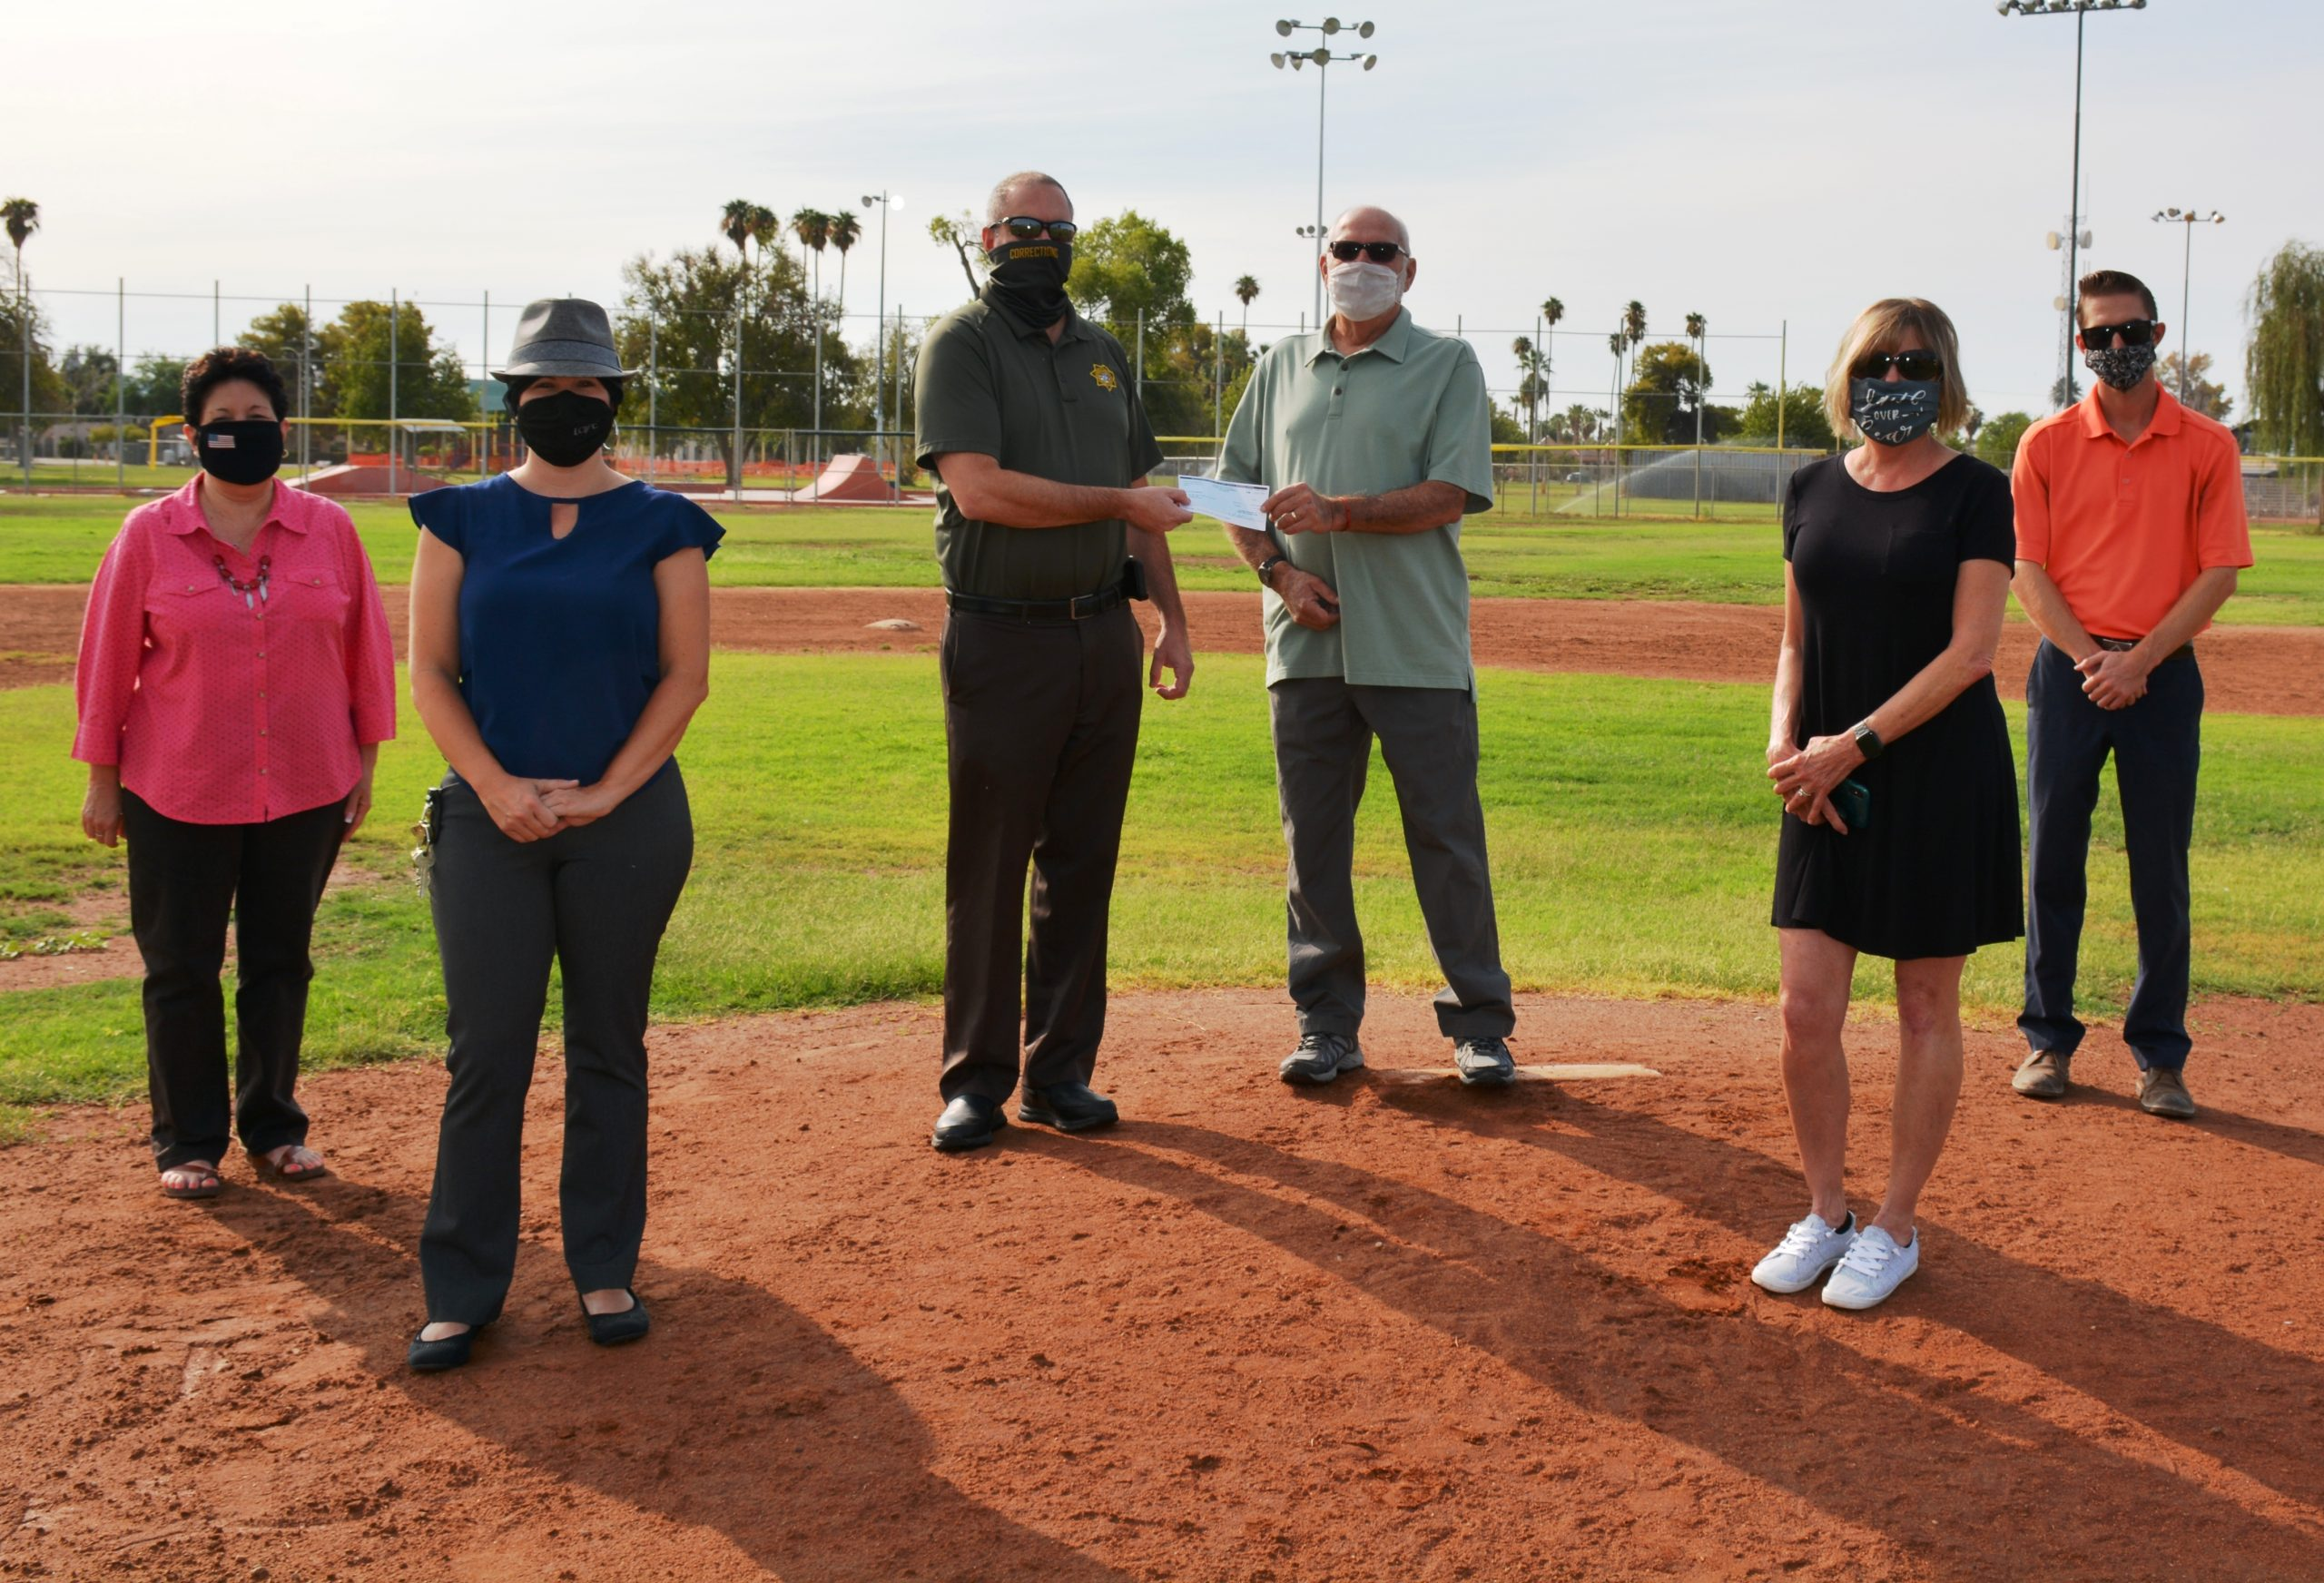 Six people wearing mask. One is handing a check to another